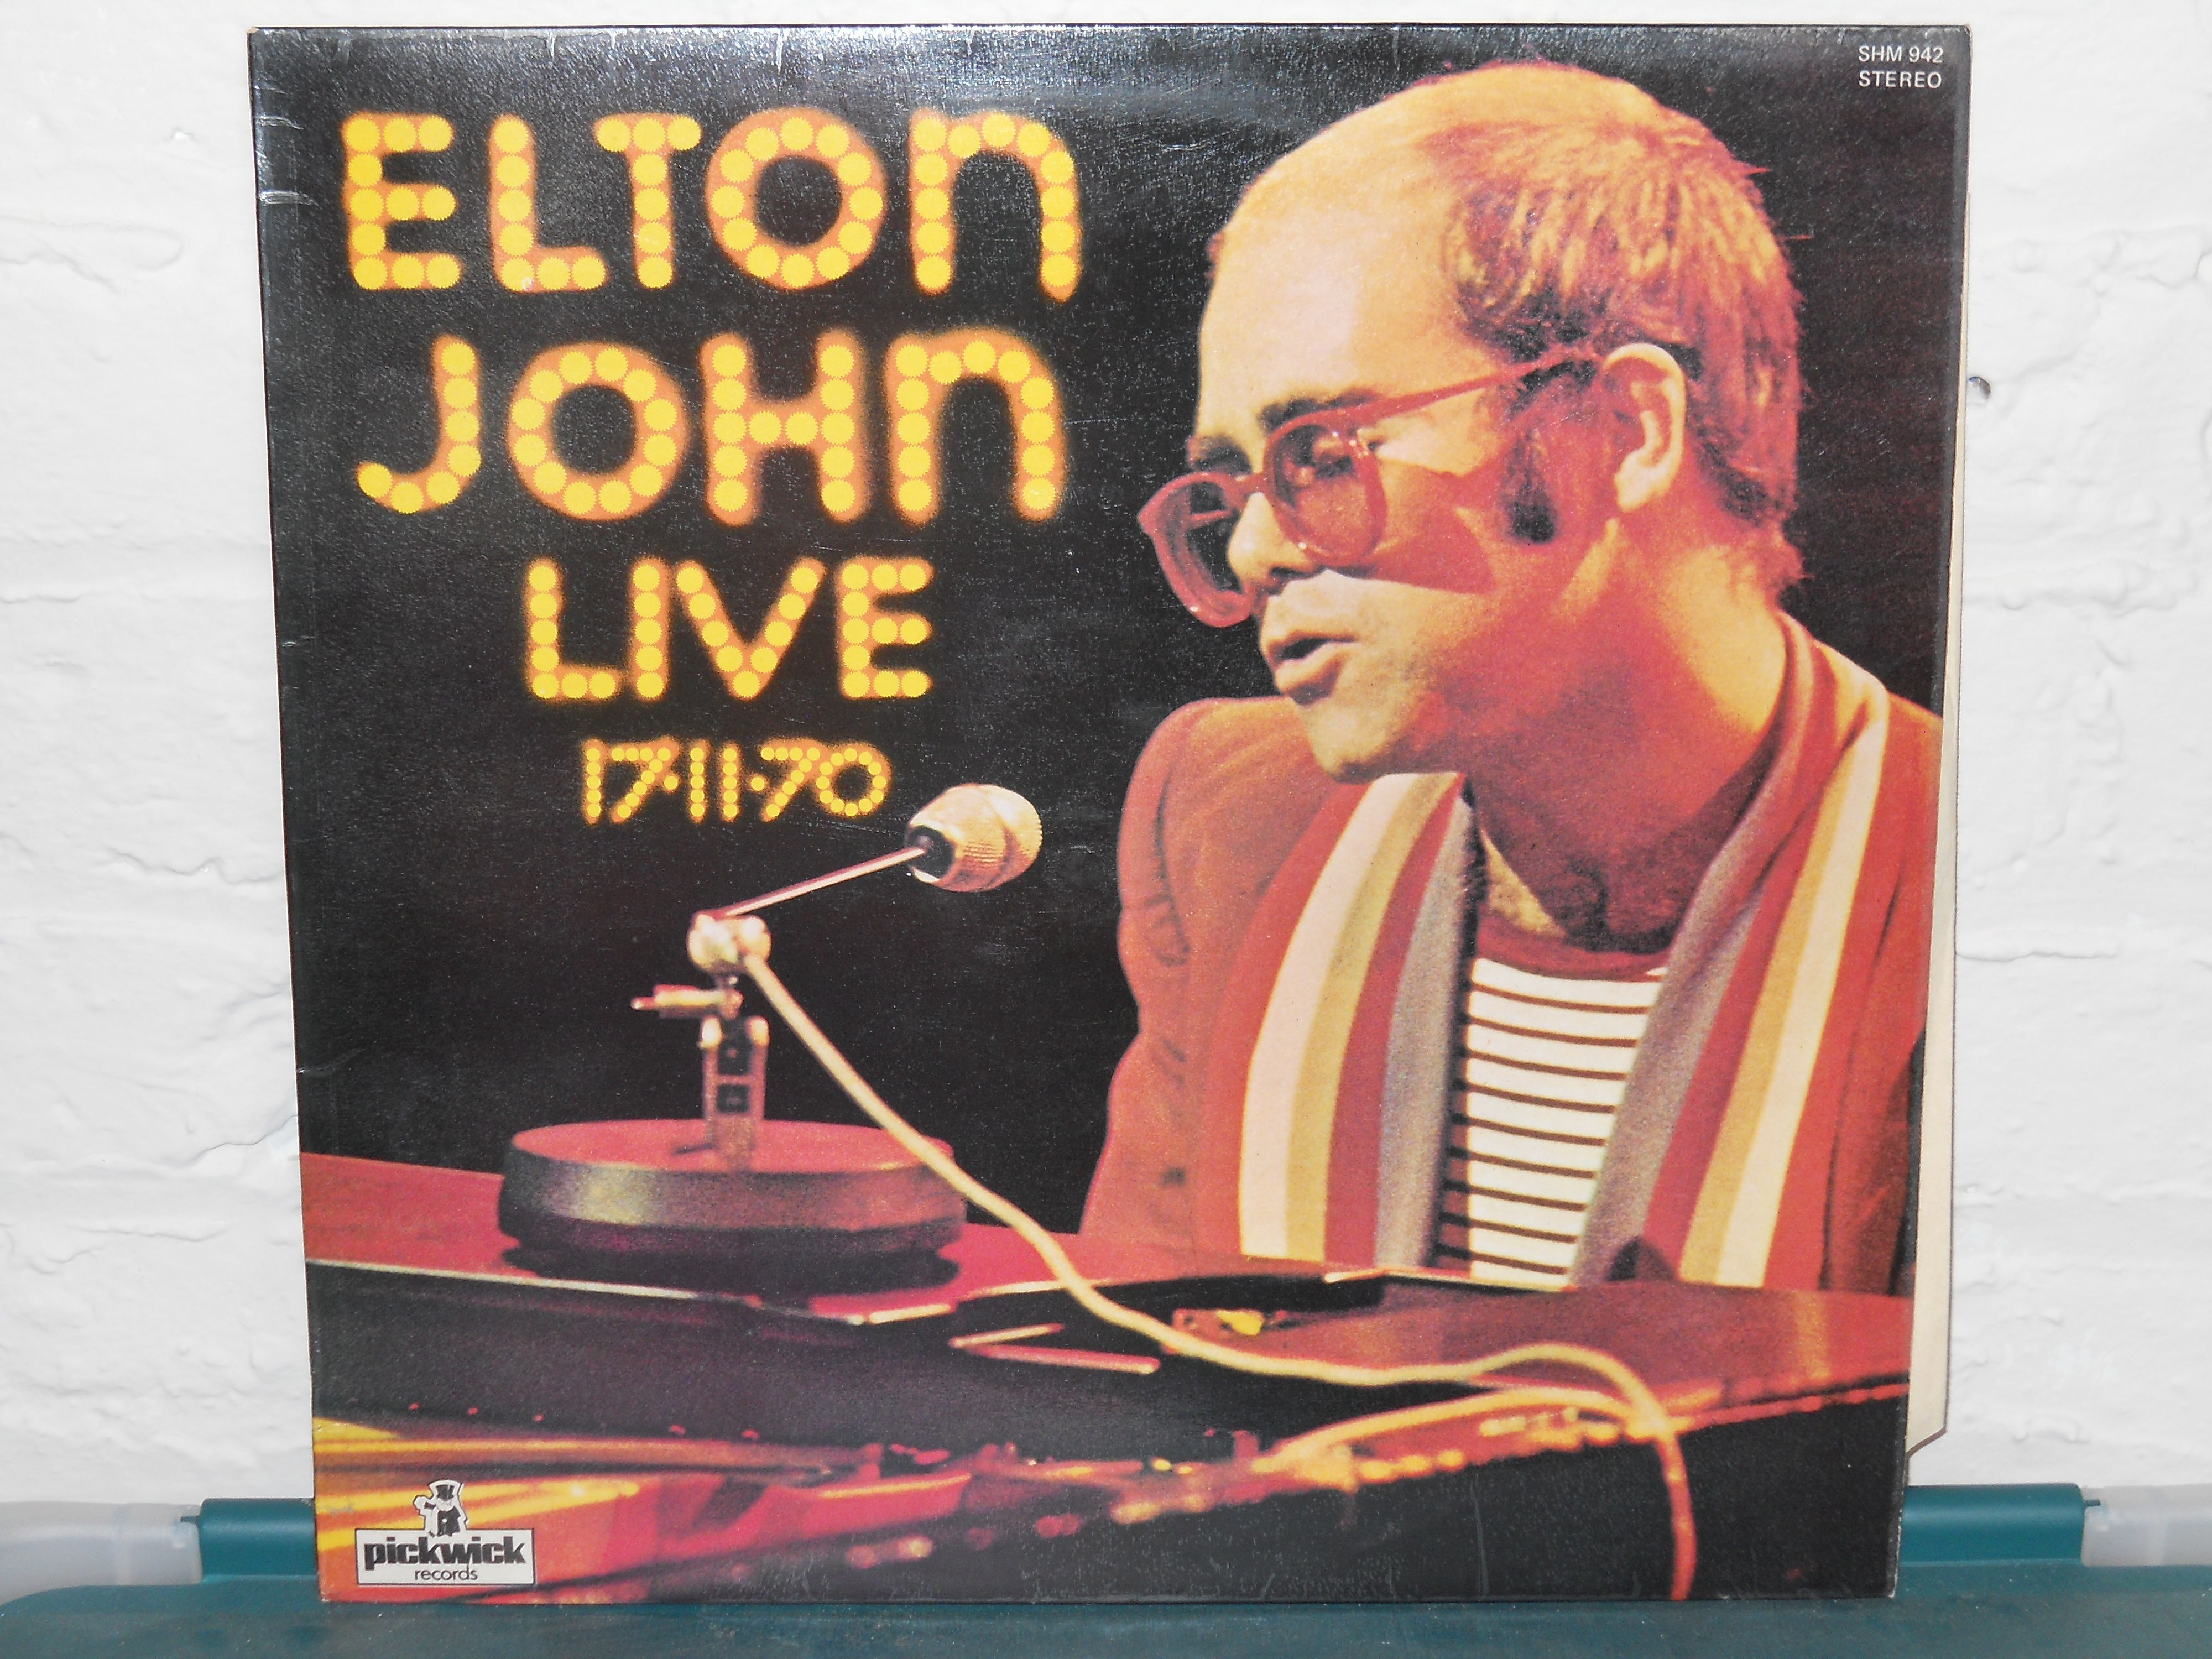 This Is The Uk Version Of 11 17 70 Which I Purchased On Vinyl Back In December Of 1978 Elton John Elton John Live Vinyl Record Shop